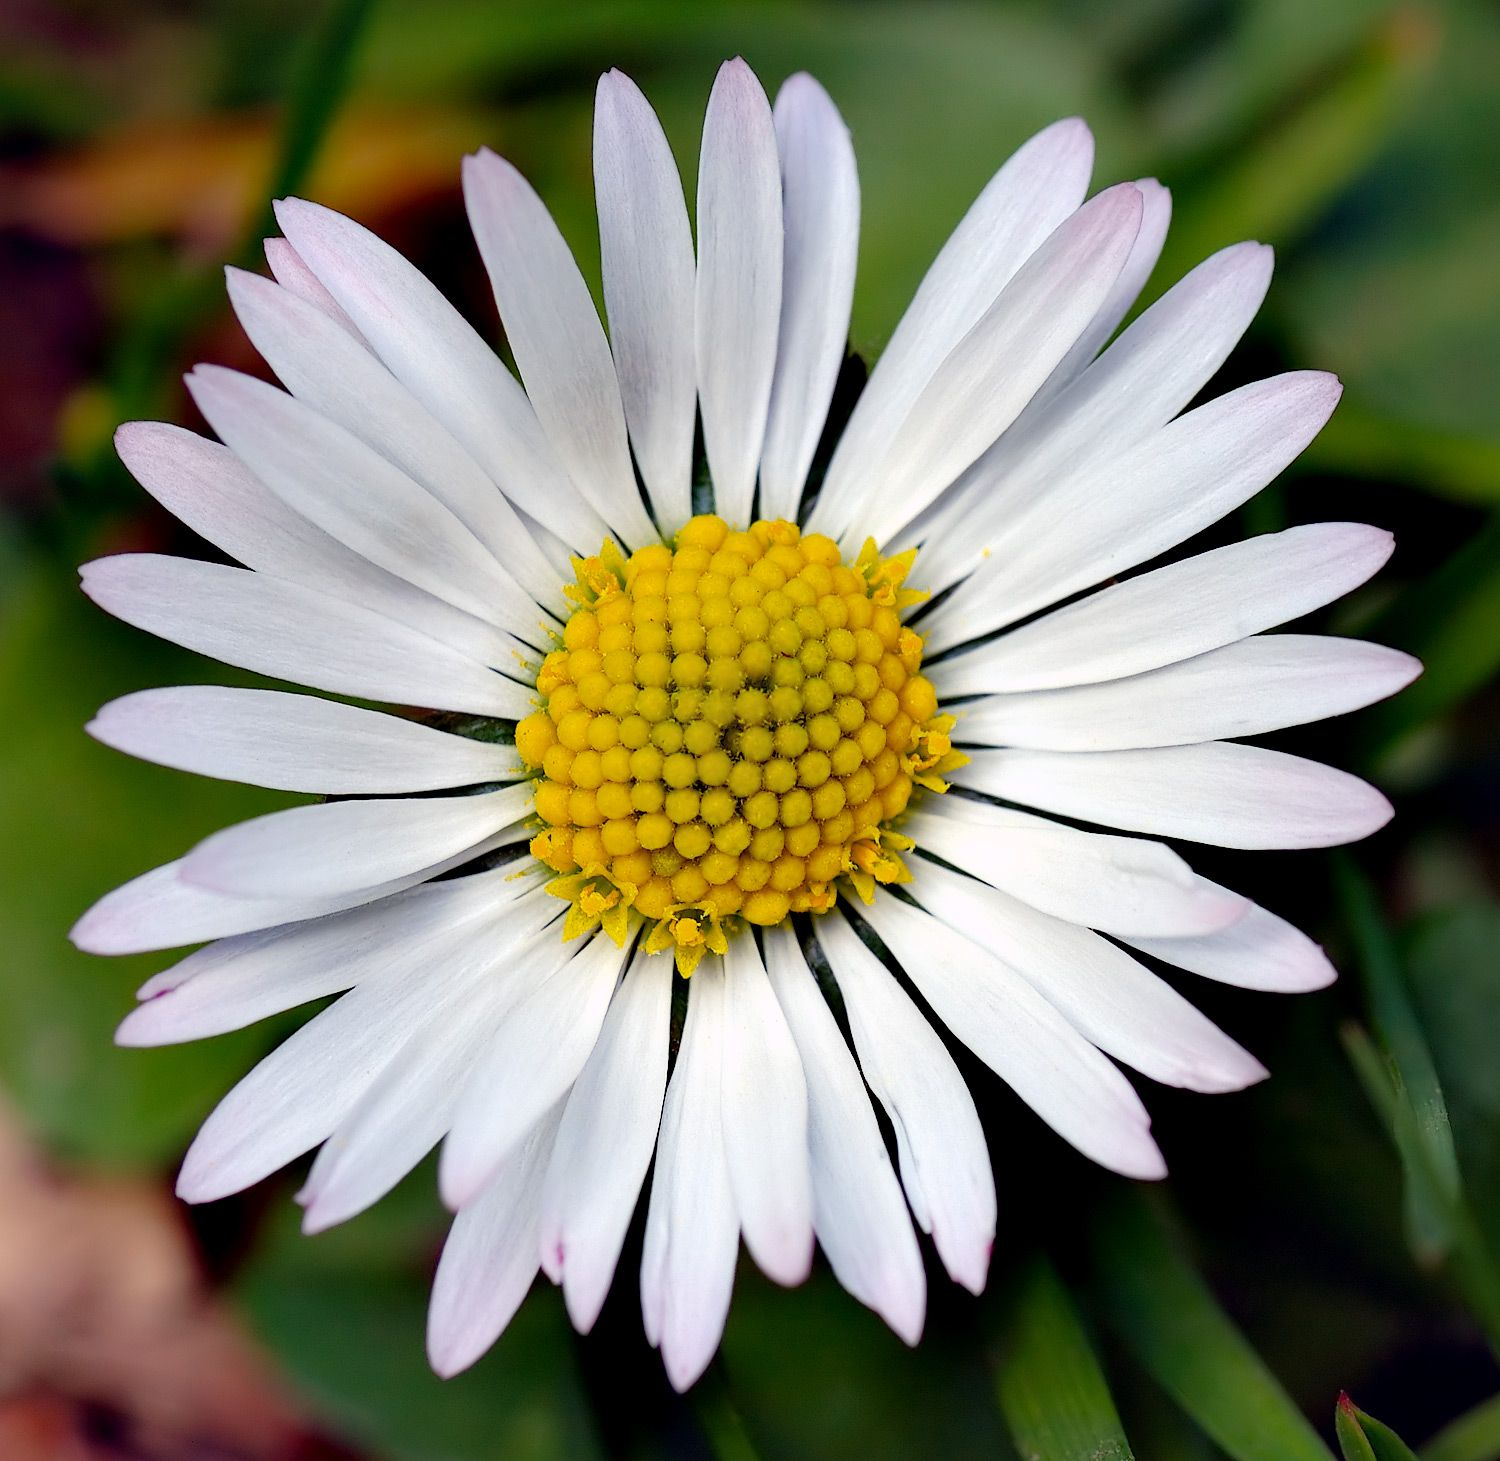 Bellis perennis wikipedia the free encyclopedia daisies bellis perennis is a common european species of daisy of the asteraceae family often considered the archetypal species of that name izmirmasajfo Image collections